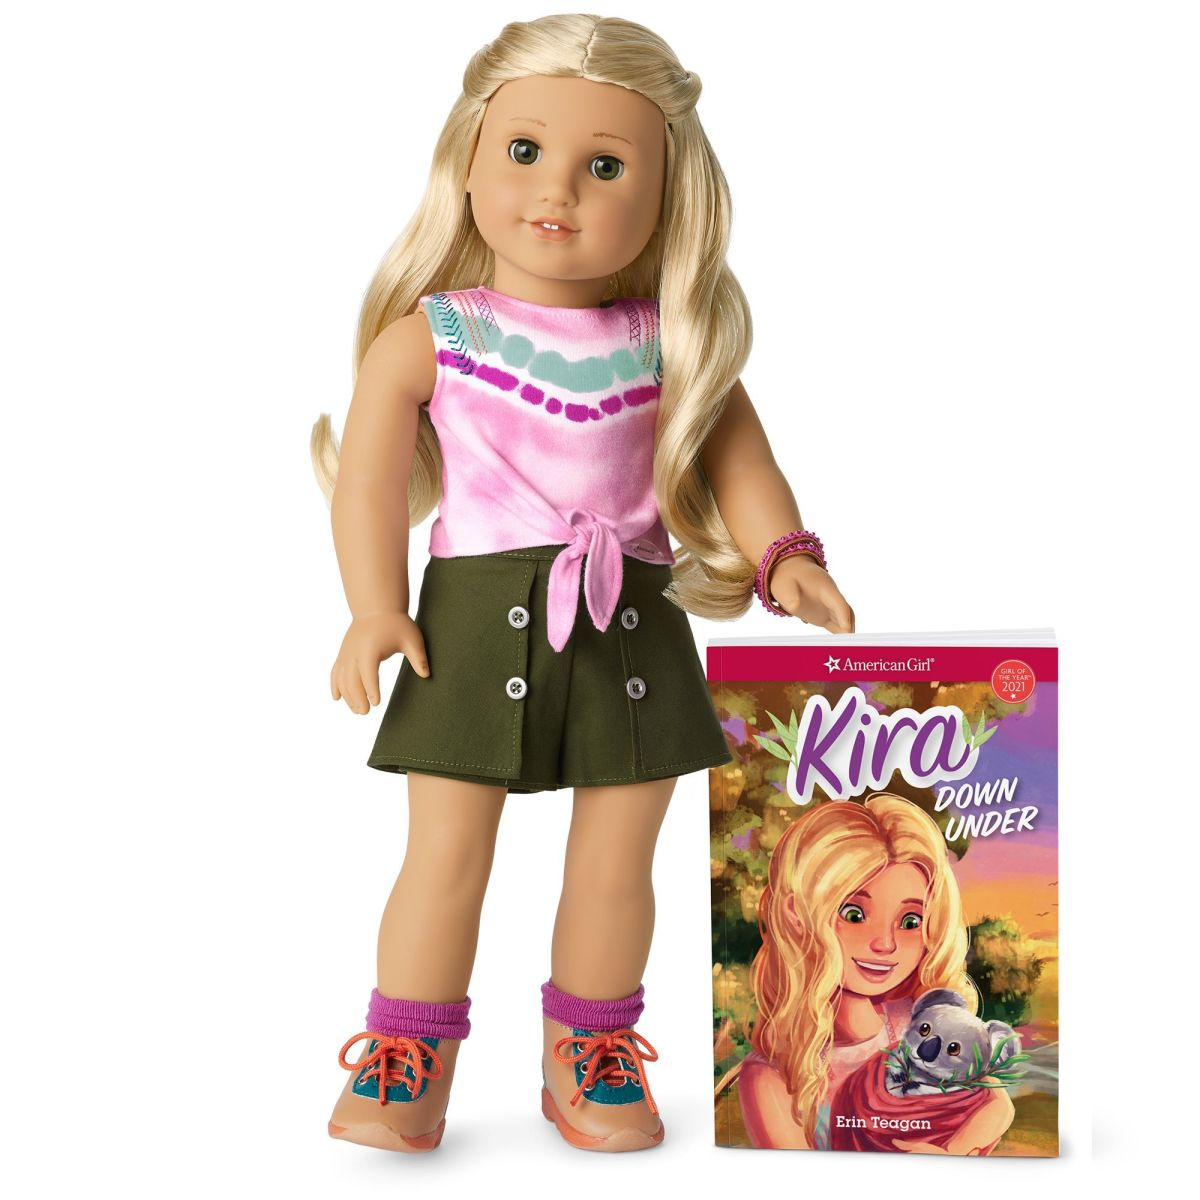 Kira, the 2021 Girl of the Year